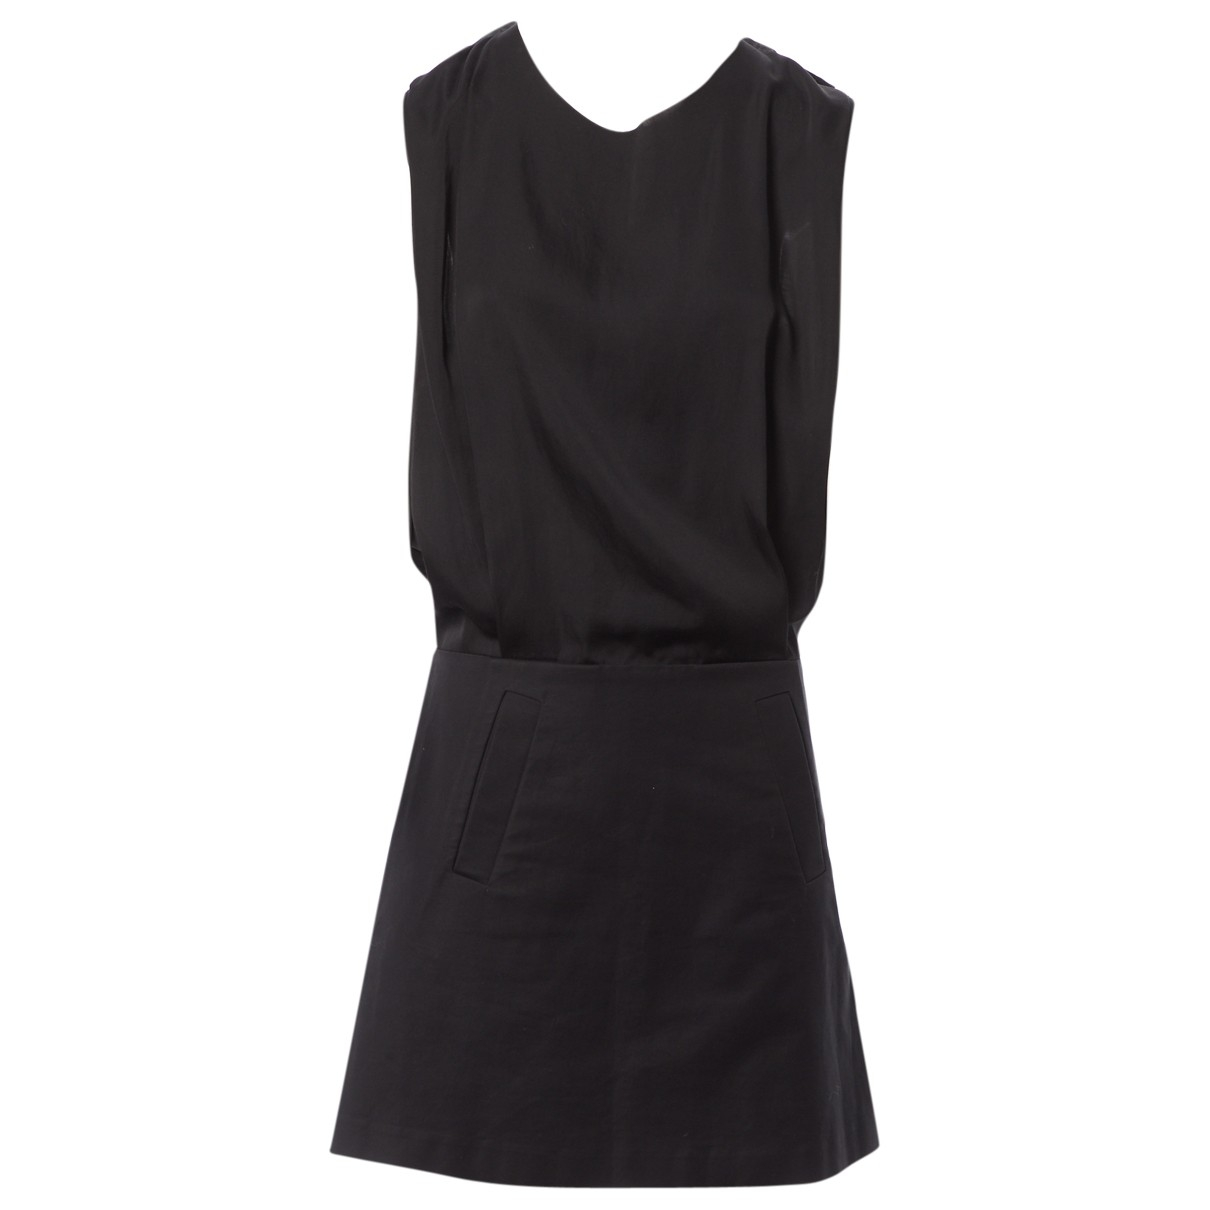 Acne Studios \N Black Cotton dress for Women 36 FR